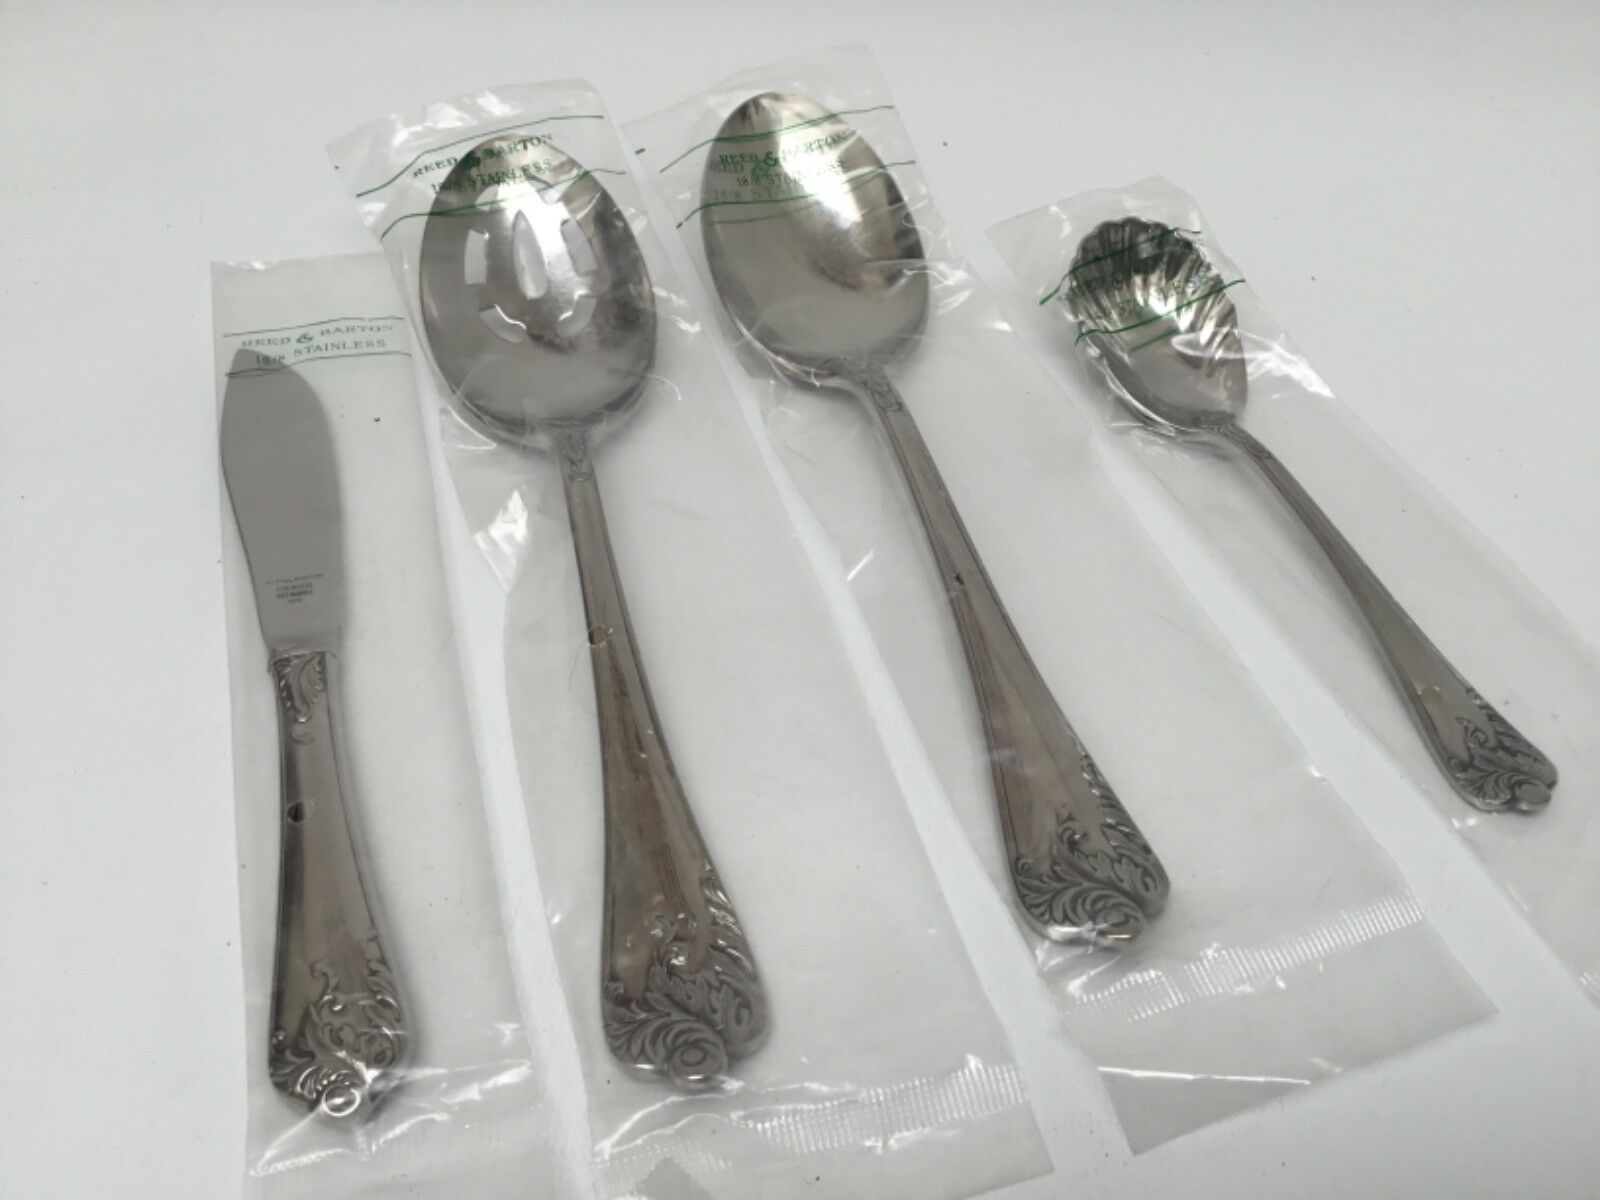 Reed & Barton Charfemmesy Inoxydable 4 Piece Hostess Set New Japan